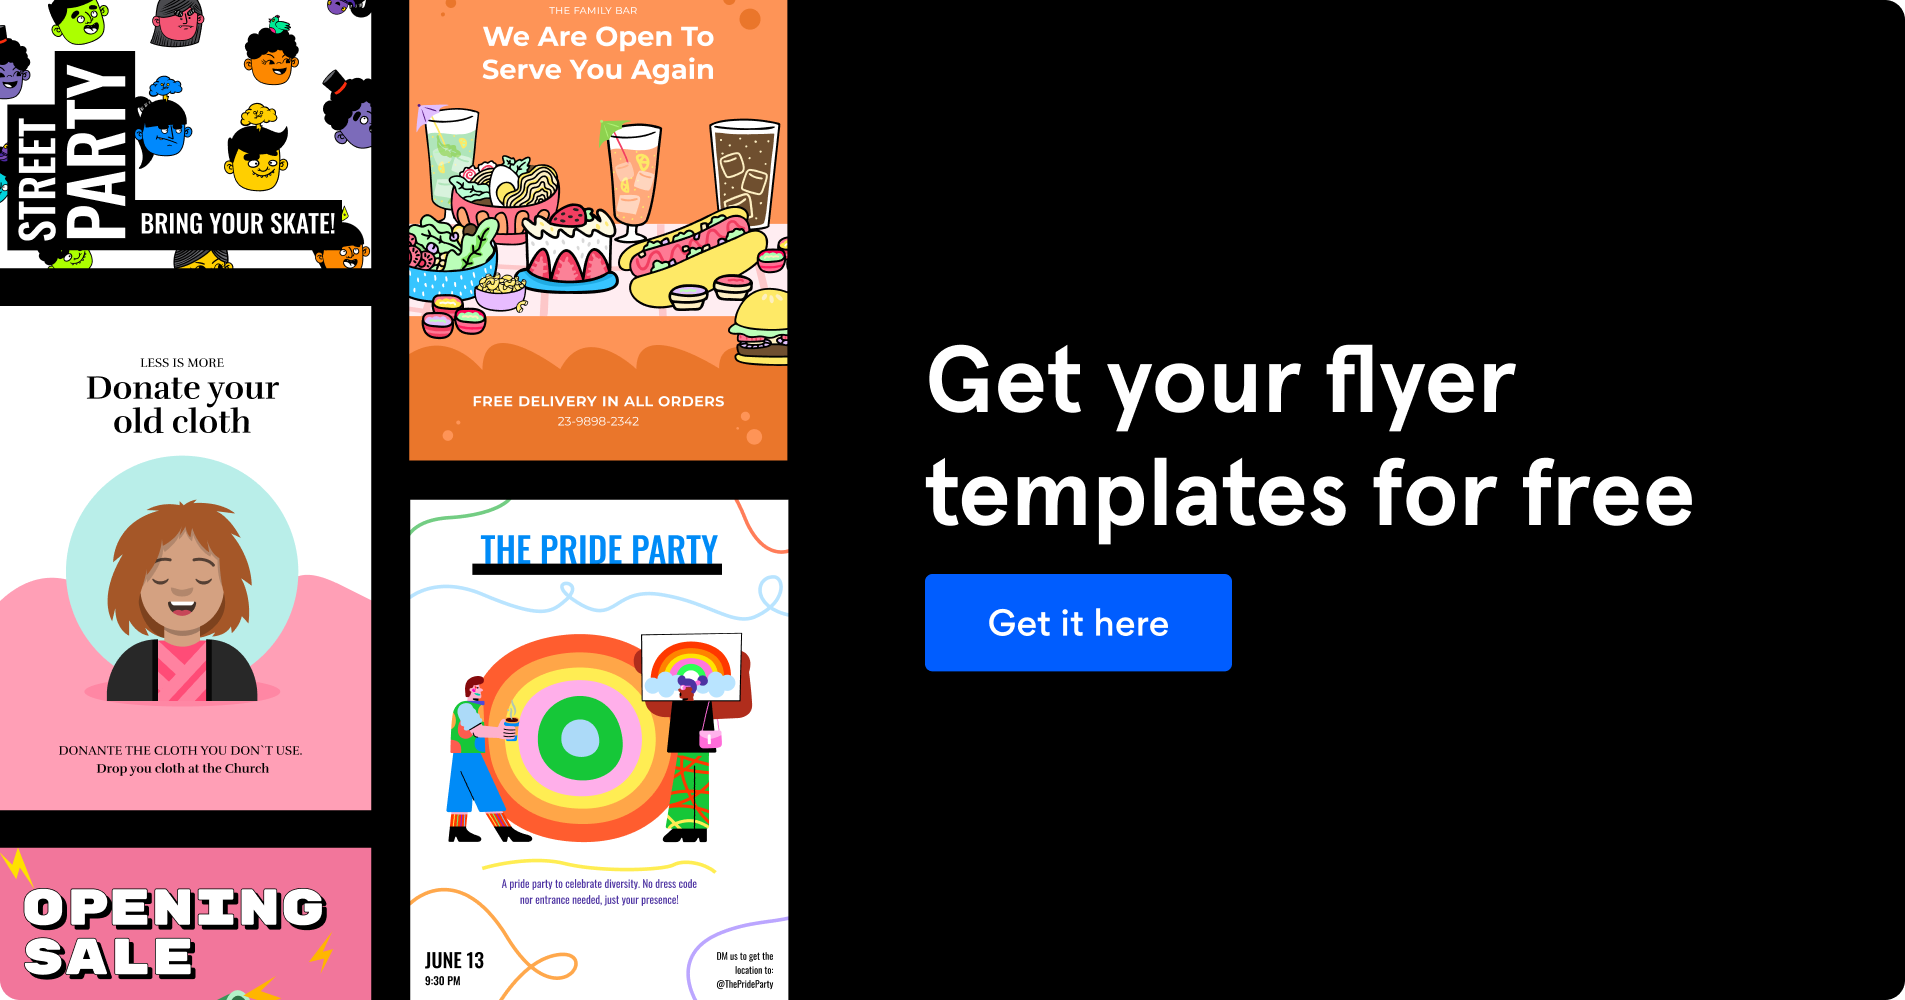 Banner promoting flyer templates on Figma